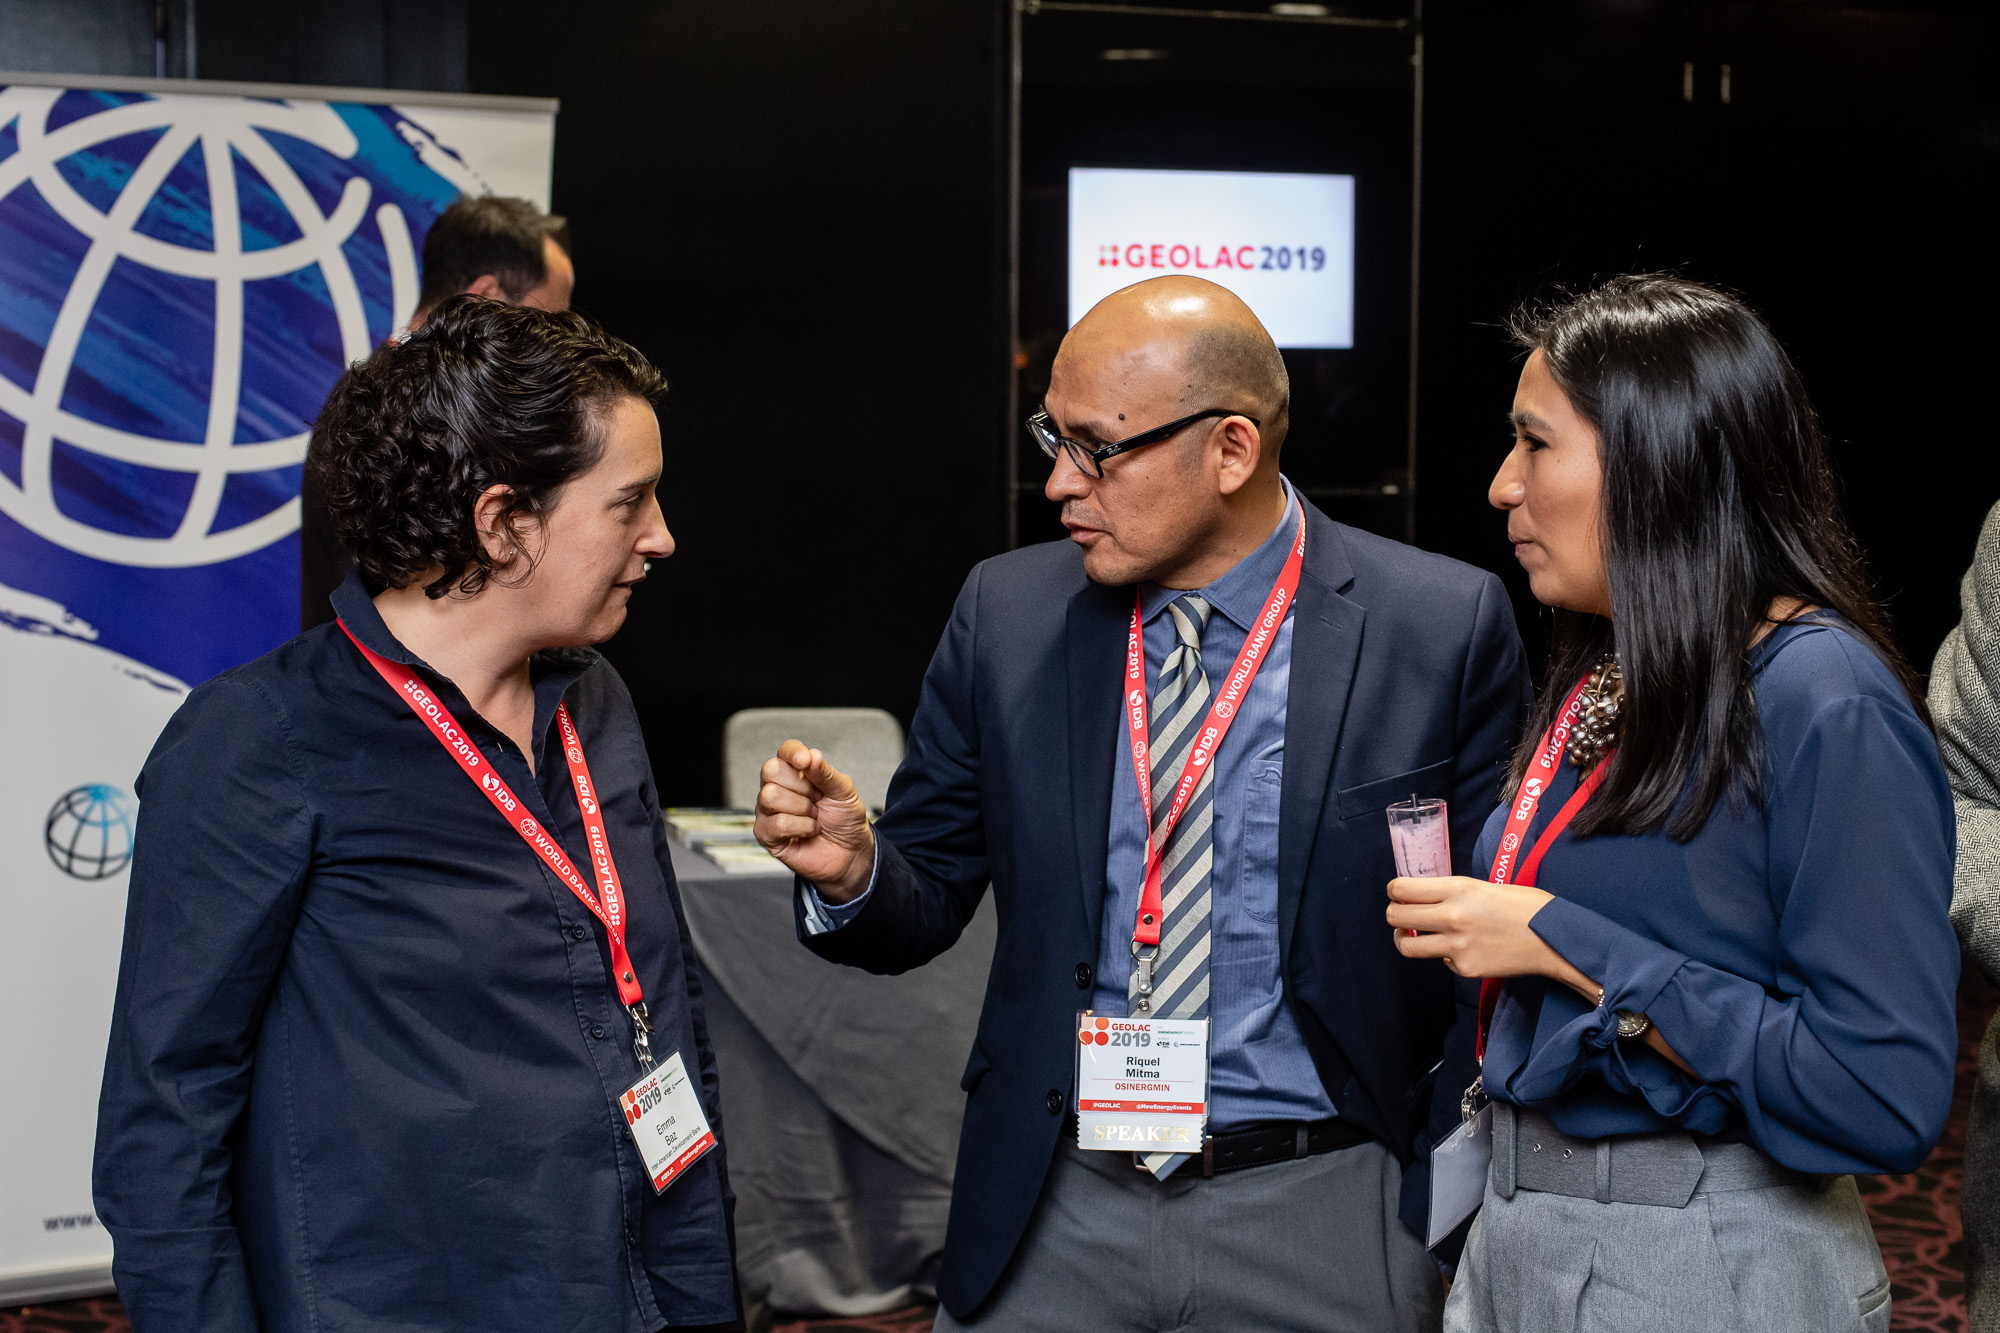 WB-Attendees-448-GEOLAC_SANTIAGO